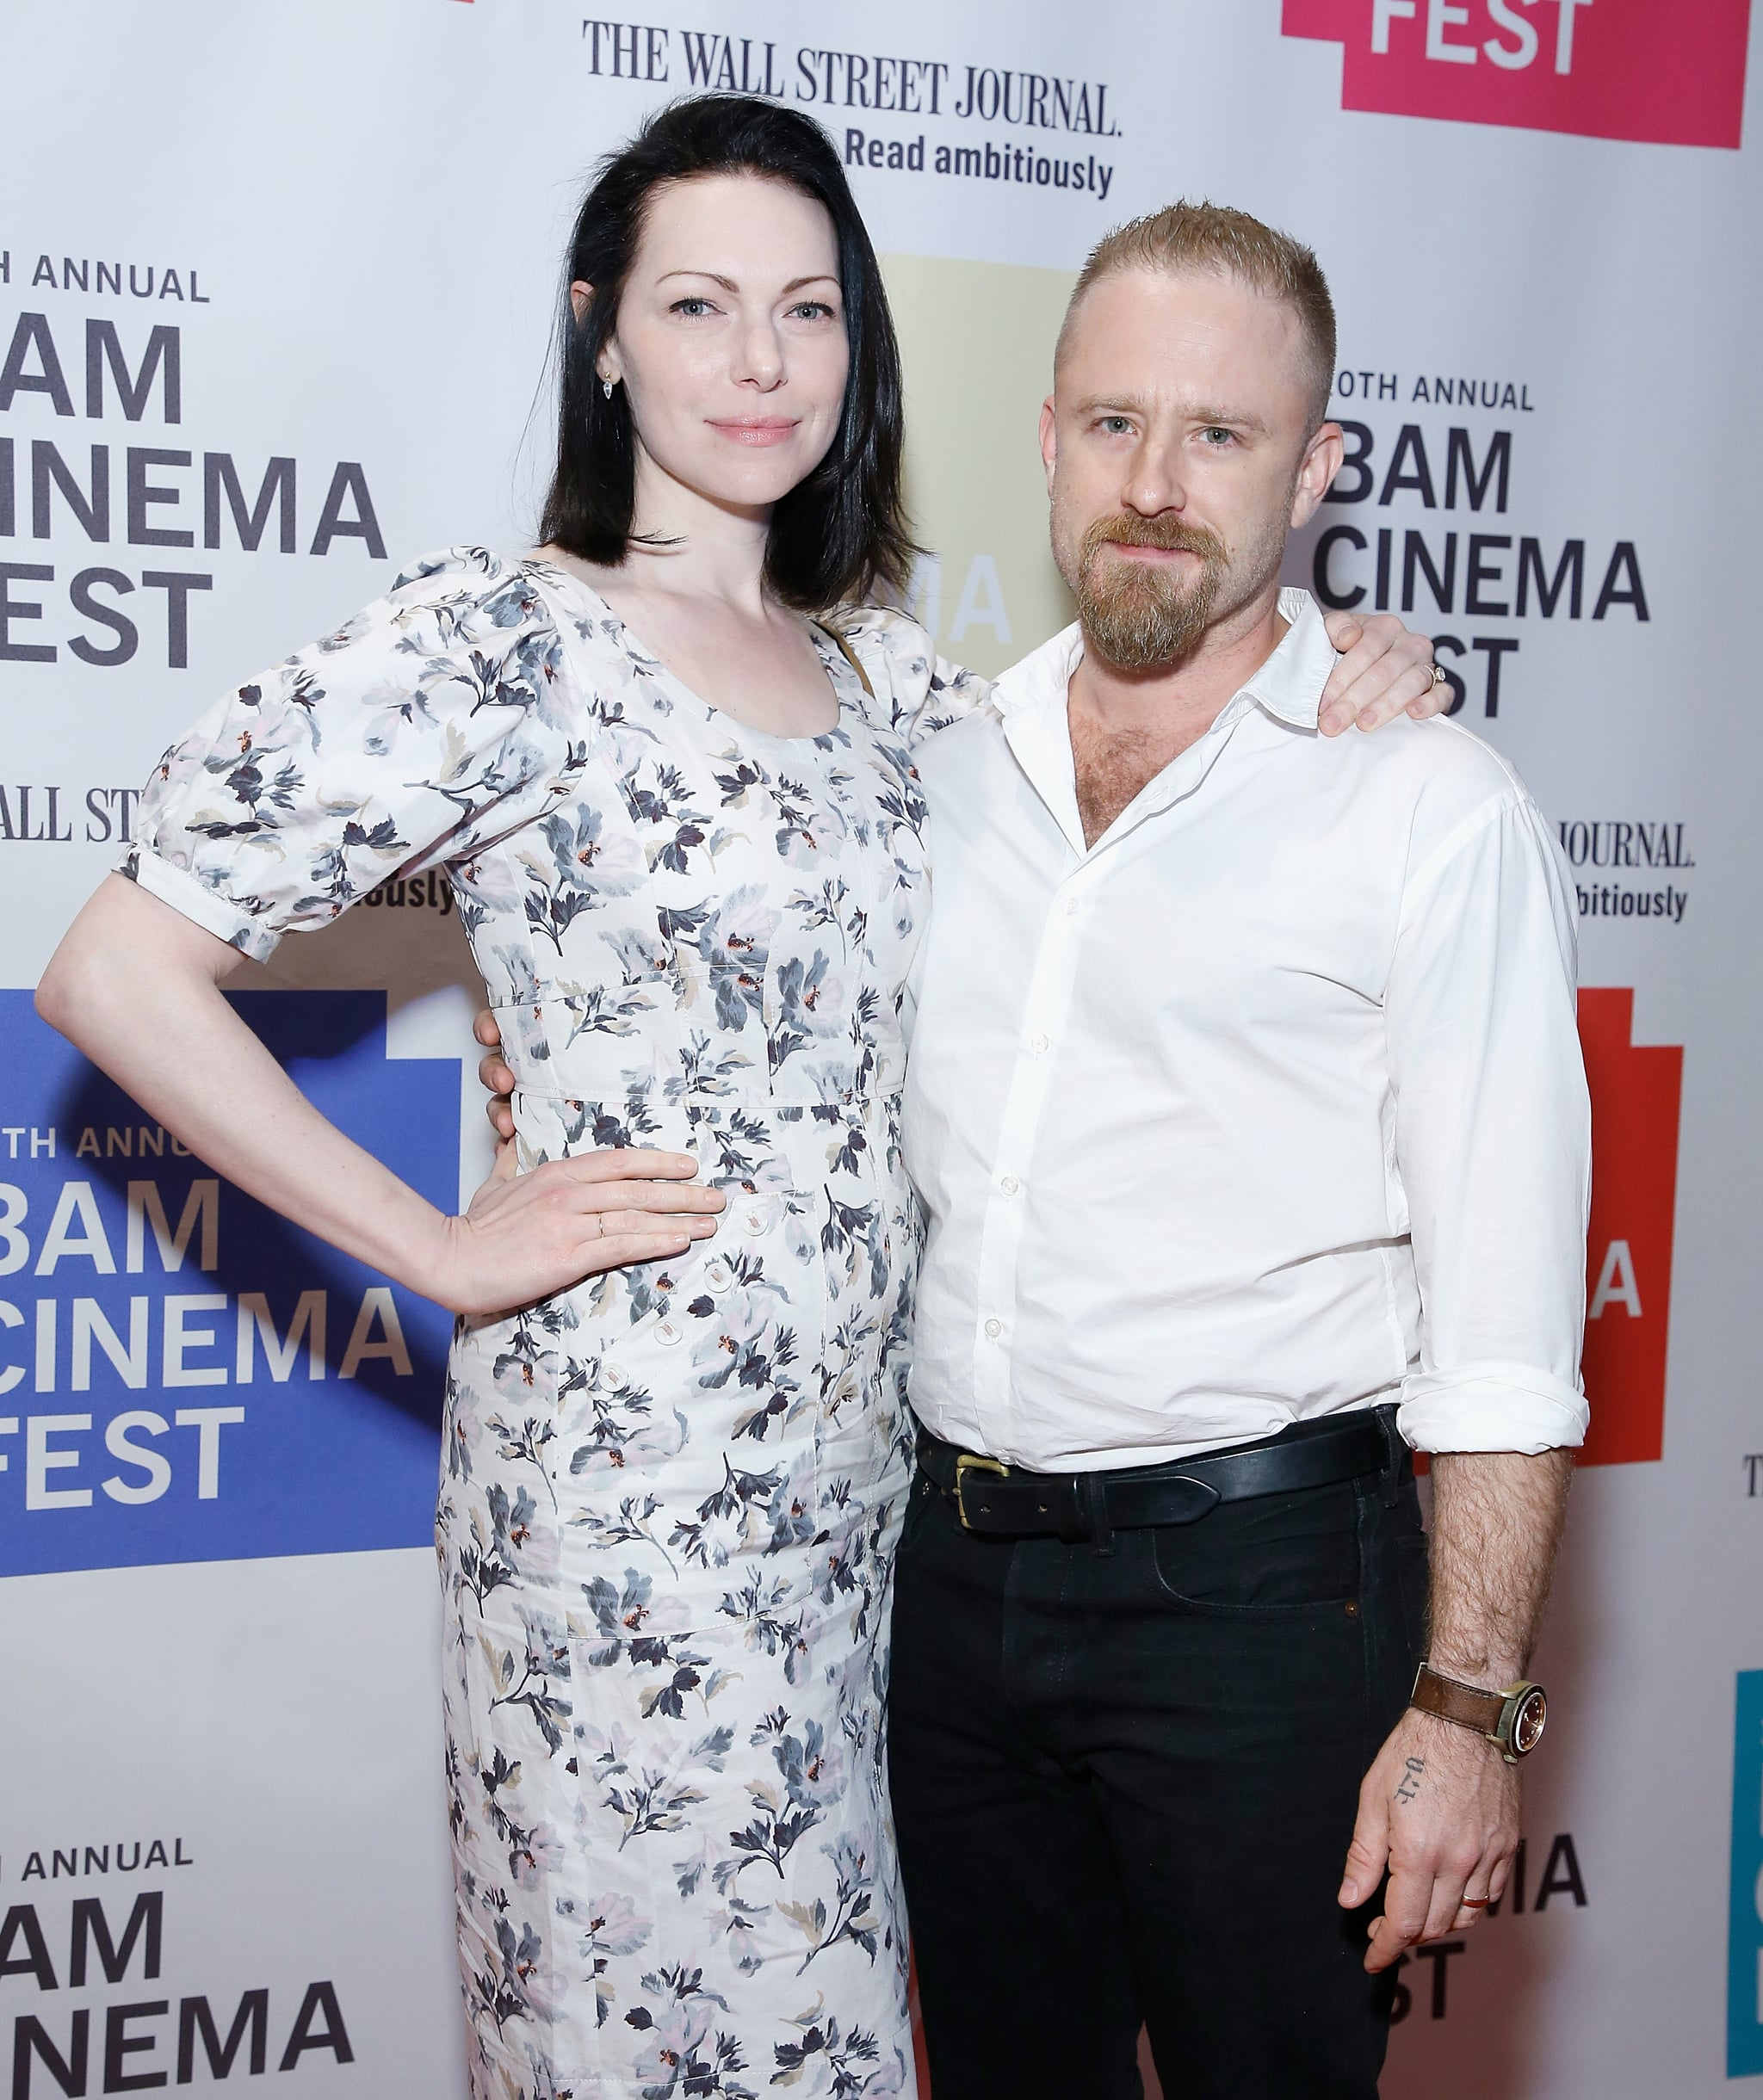 Ben Foster And Laura Prepon At Bam Cinema Fest June 2018 Popsugar Celebrity